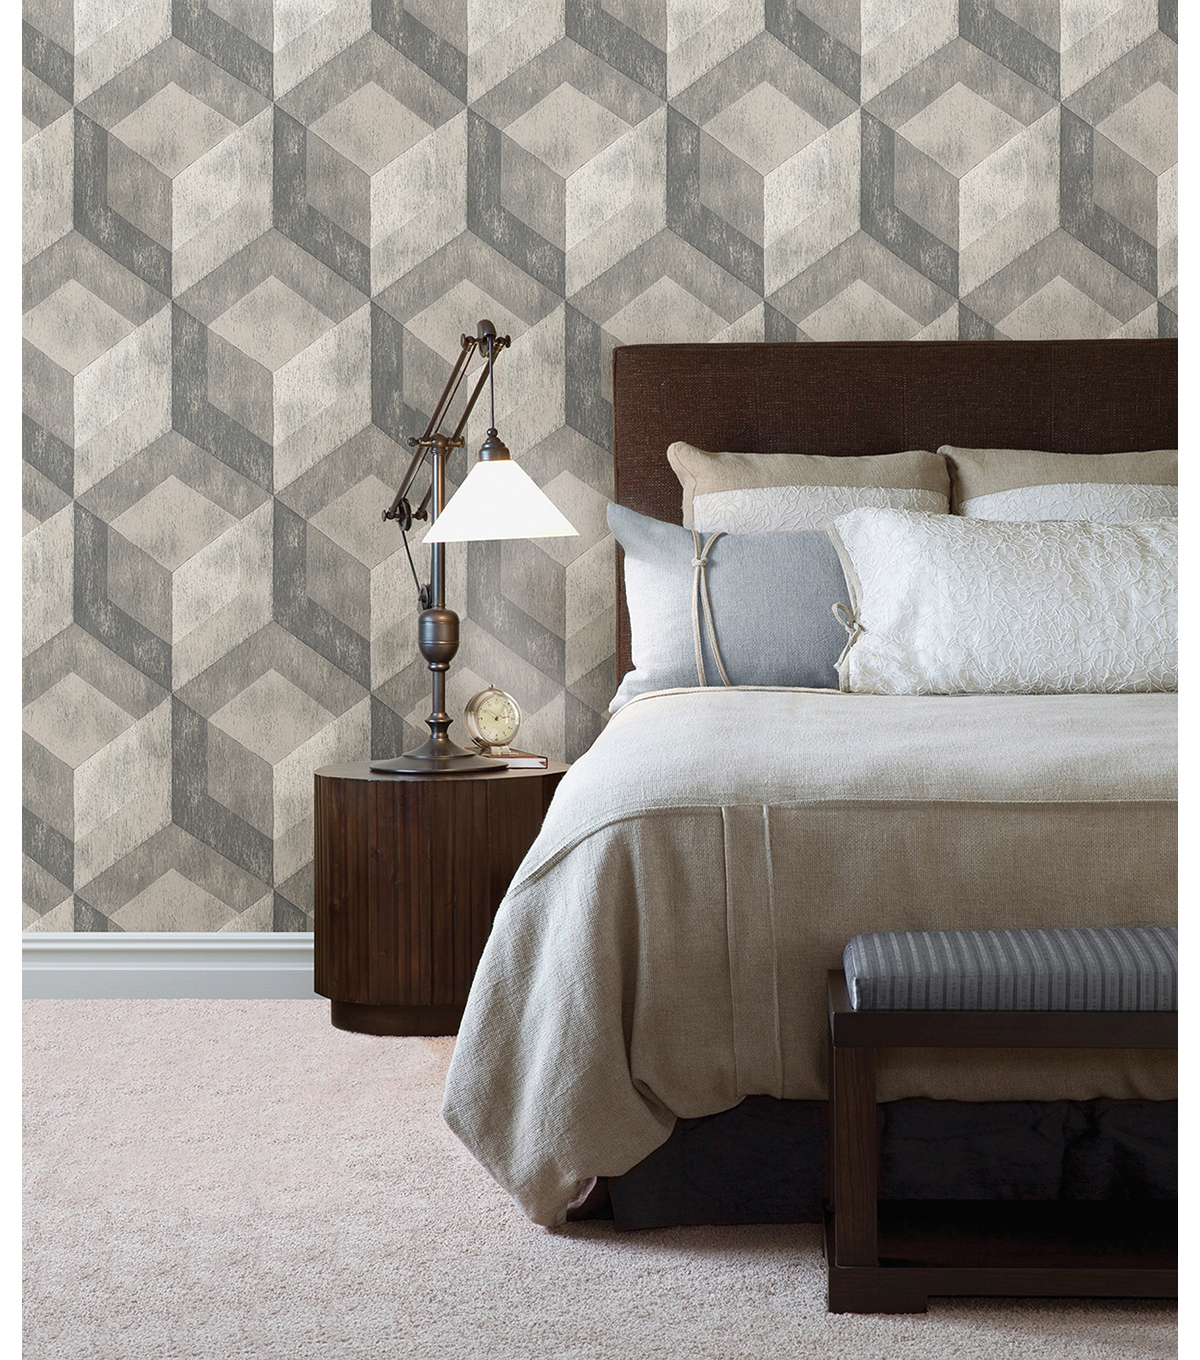 WallPops® NuWallpaper™ Bauhaus Weathered Wood Peel and Stick Wallpaper